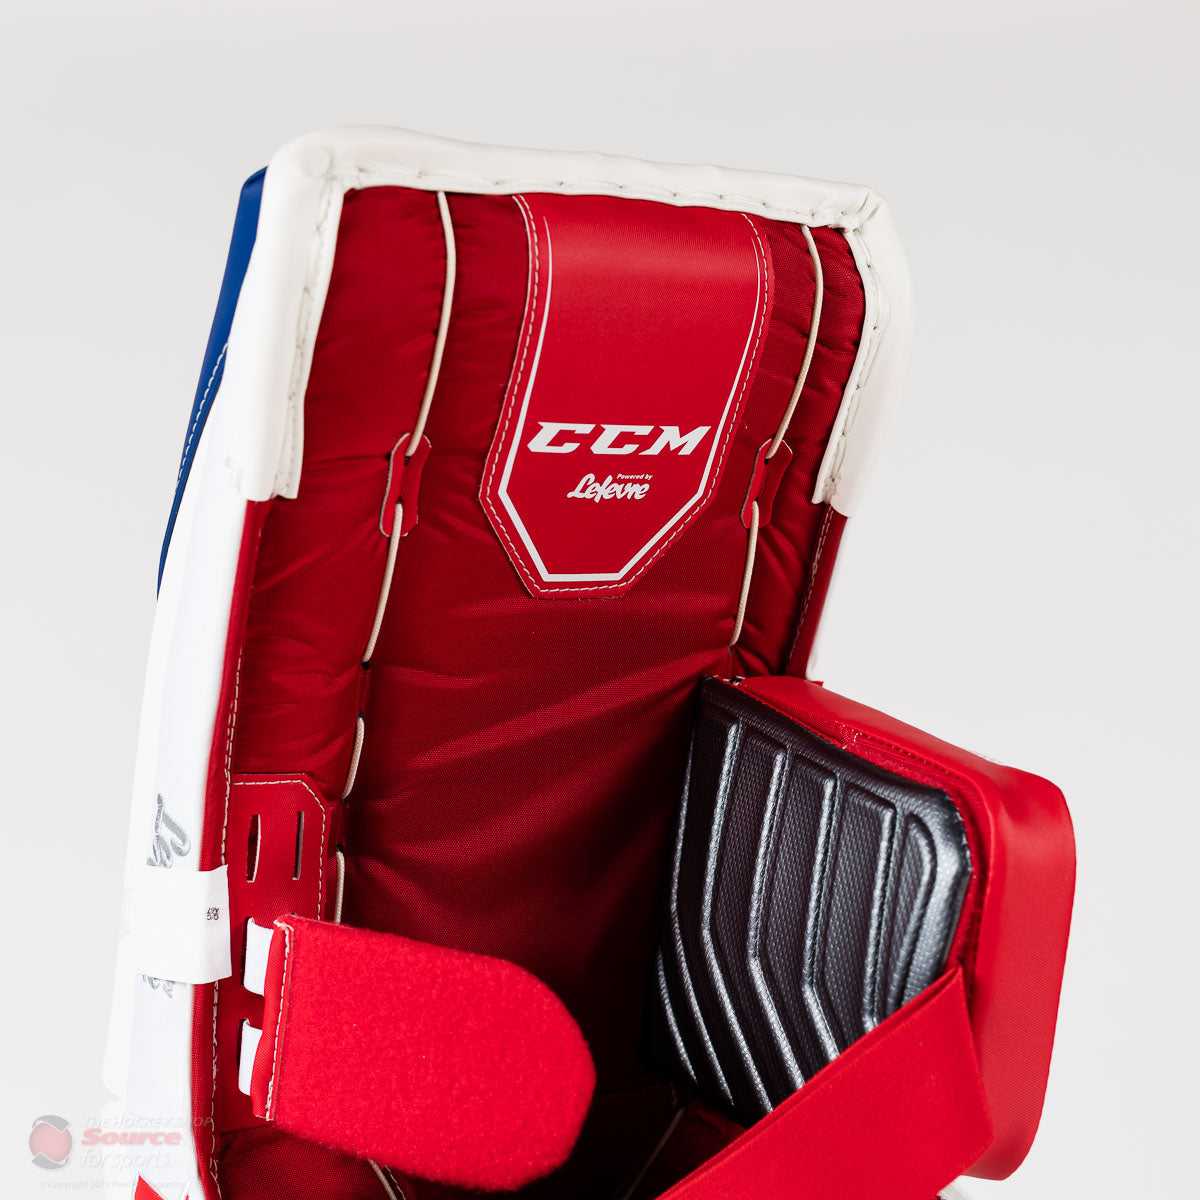 a97cd9ae629 CCM Extreme Flex 4 Pro Senior Goalie Pads – The Hockey Shop Source ...